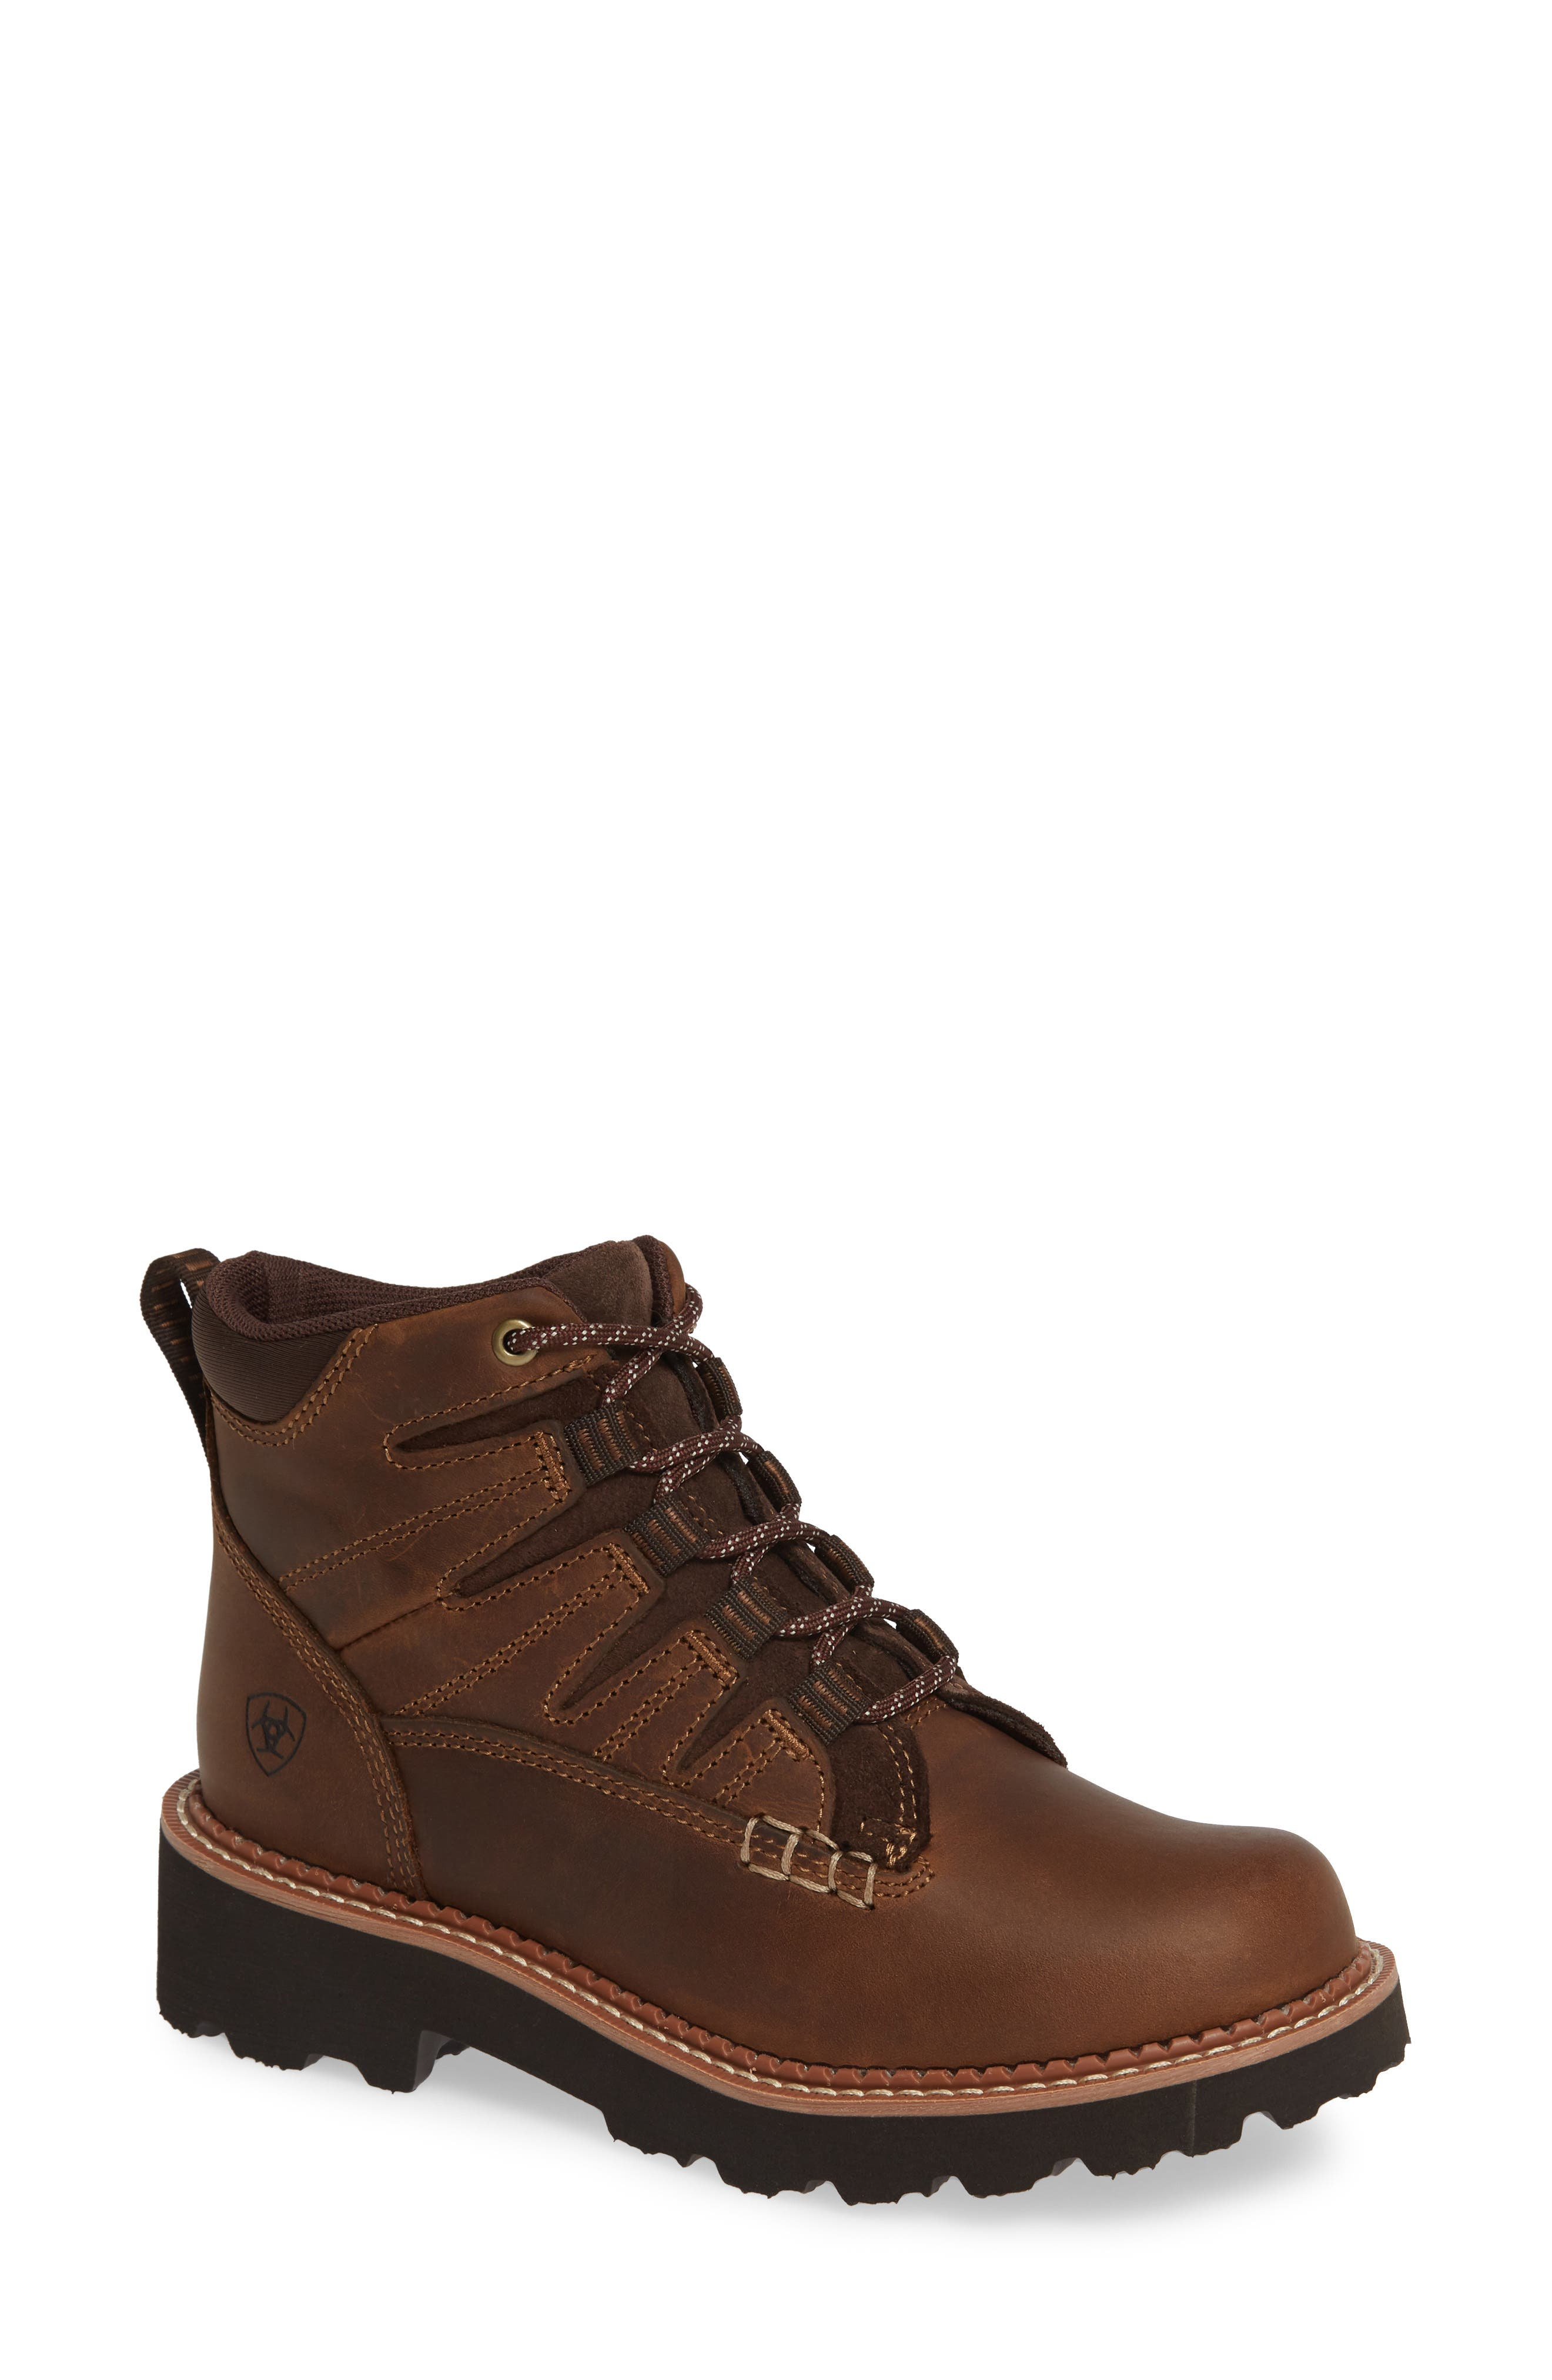 Ariat Canyon Ii Bootie- Brown